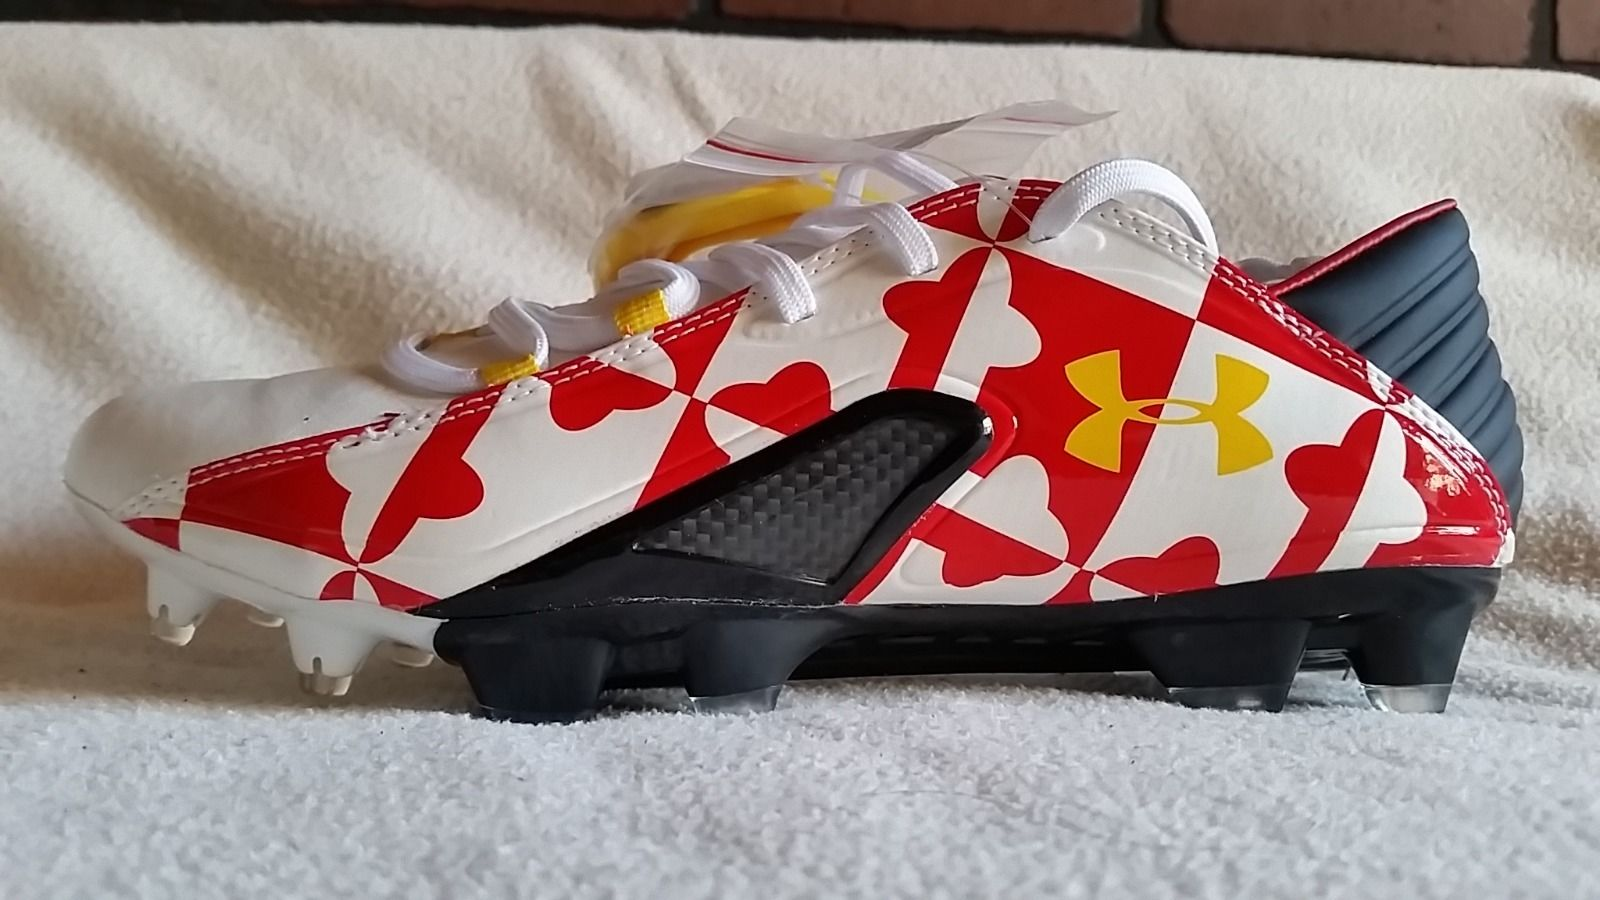 low priced d3fb7 f86a2 Bet you didn t know that Under Armour did a custom edition of the Blur